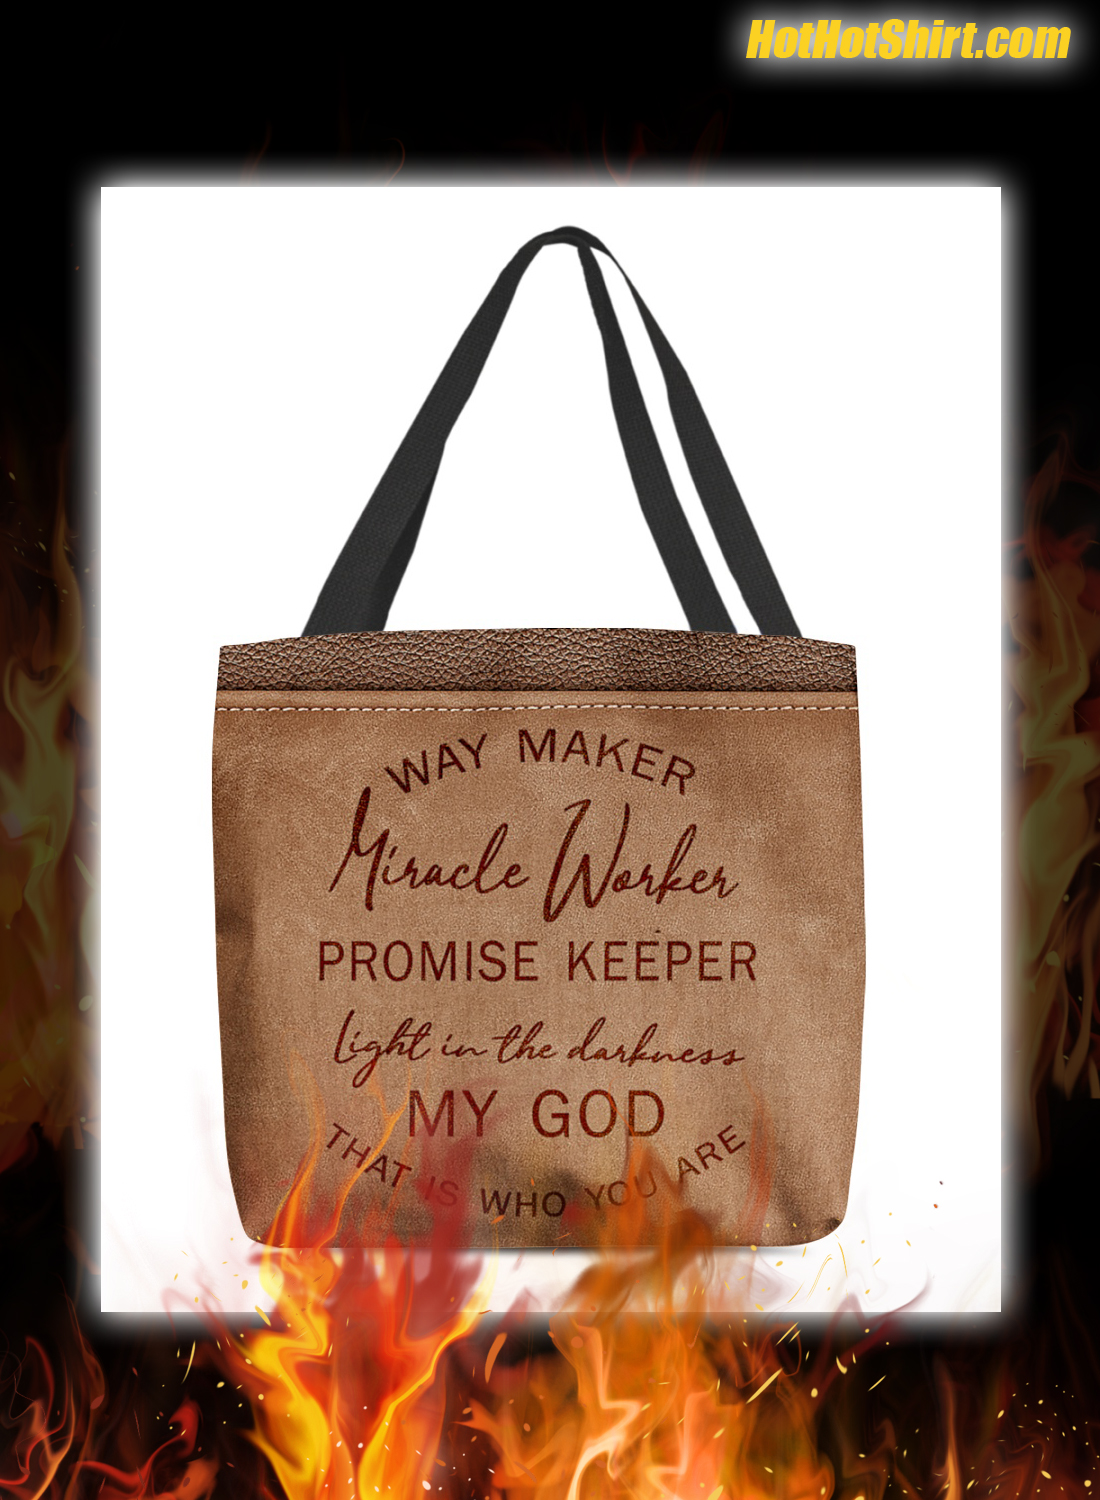 Way maker miracle worker promise keeper tote bag